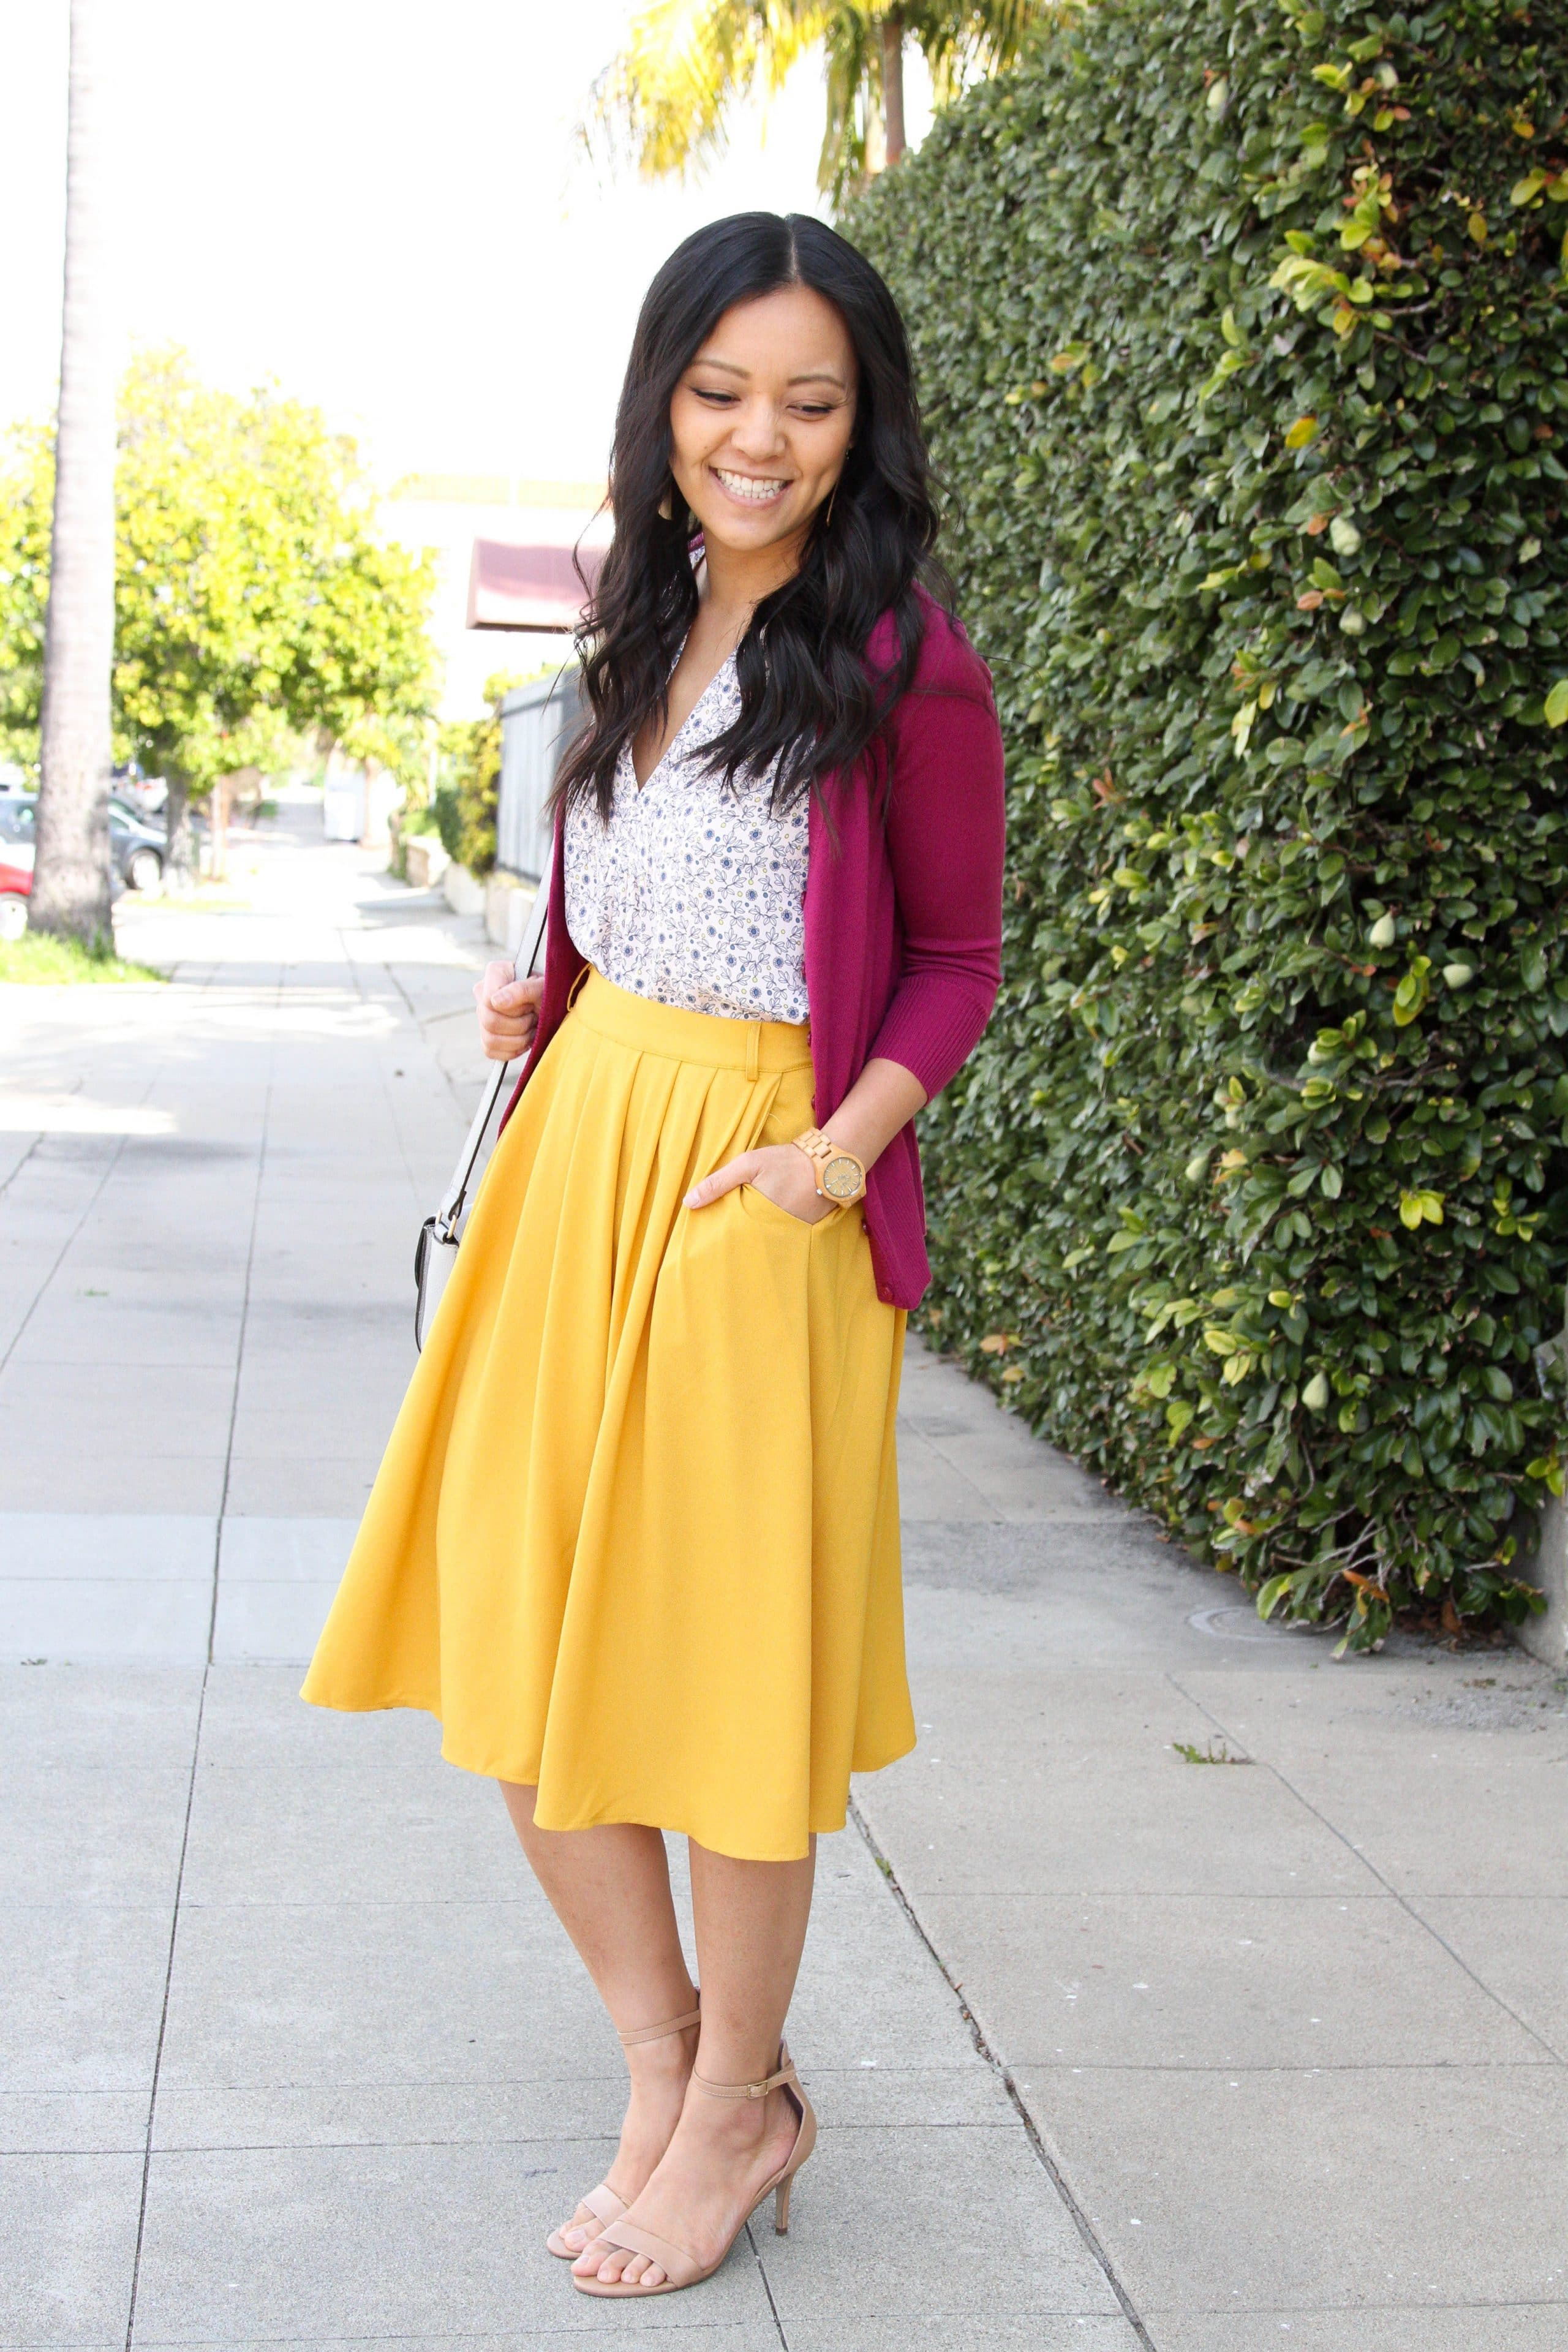 magenta cardigan + ankle strap sandals + White floral + yellow skirt +grey crossbody